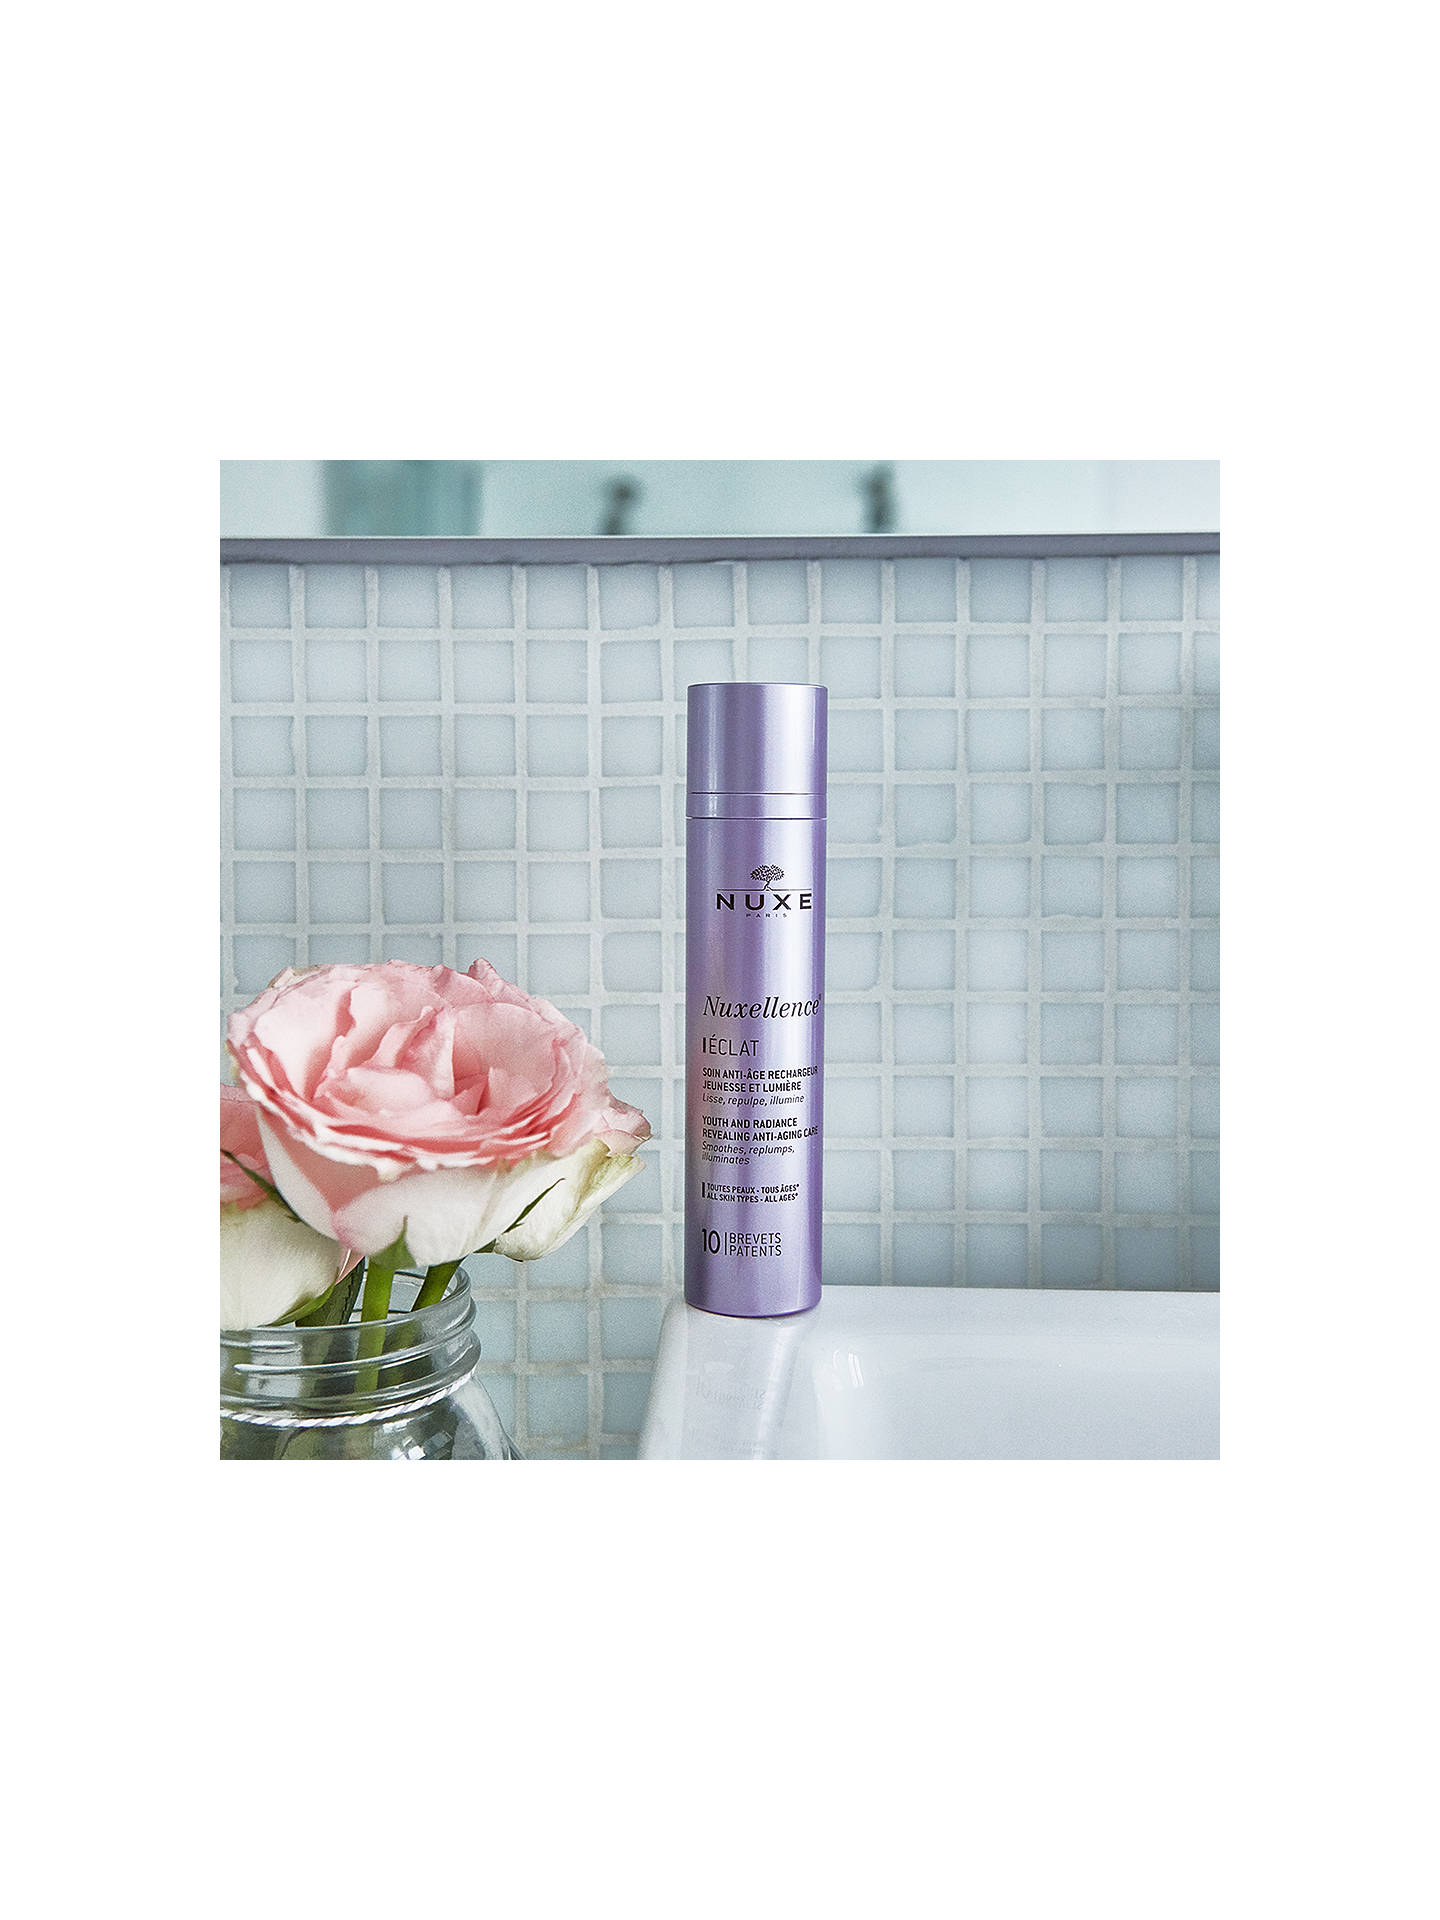 BuyNUXE Nuxellence® Eclat Anti-Ageing and Radiance Revealing Day Care, 50ml Online at johnlewis.com